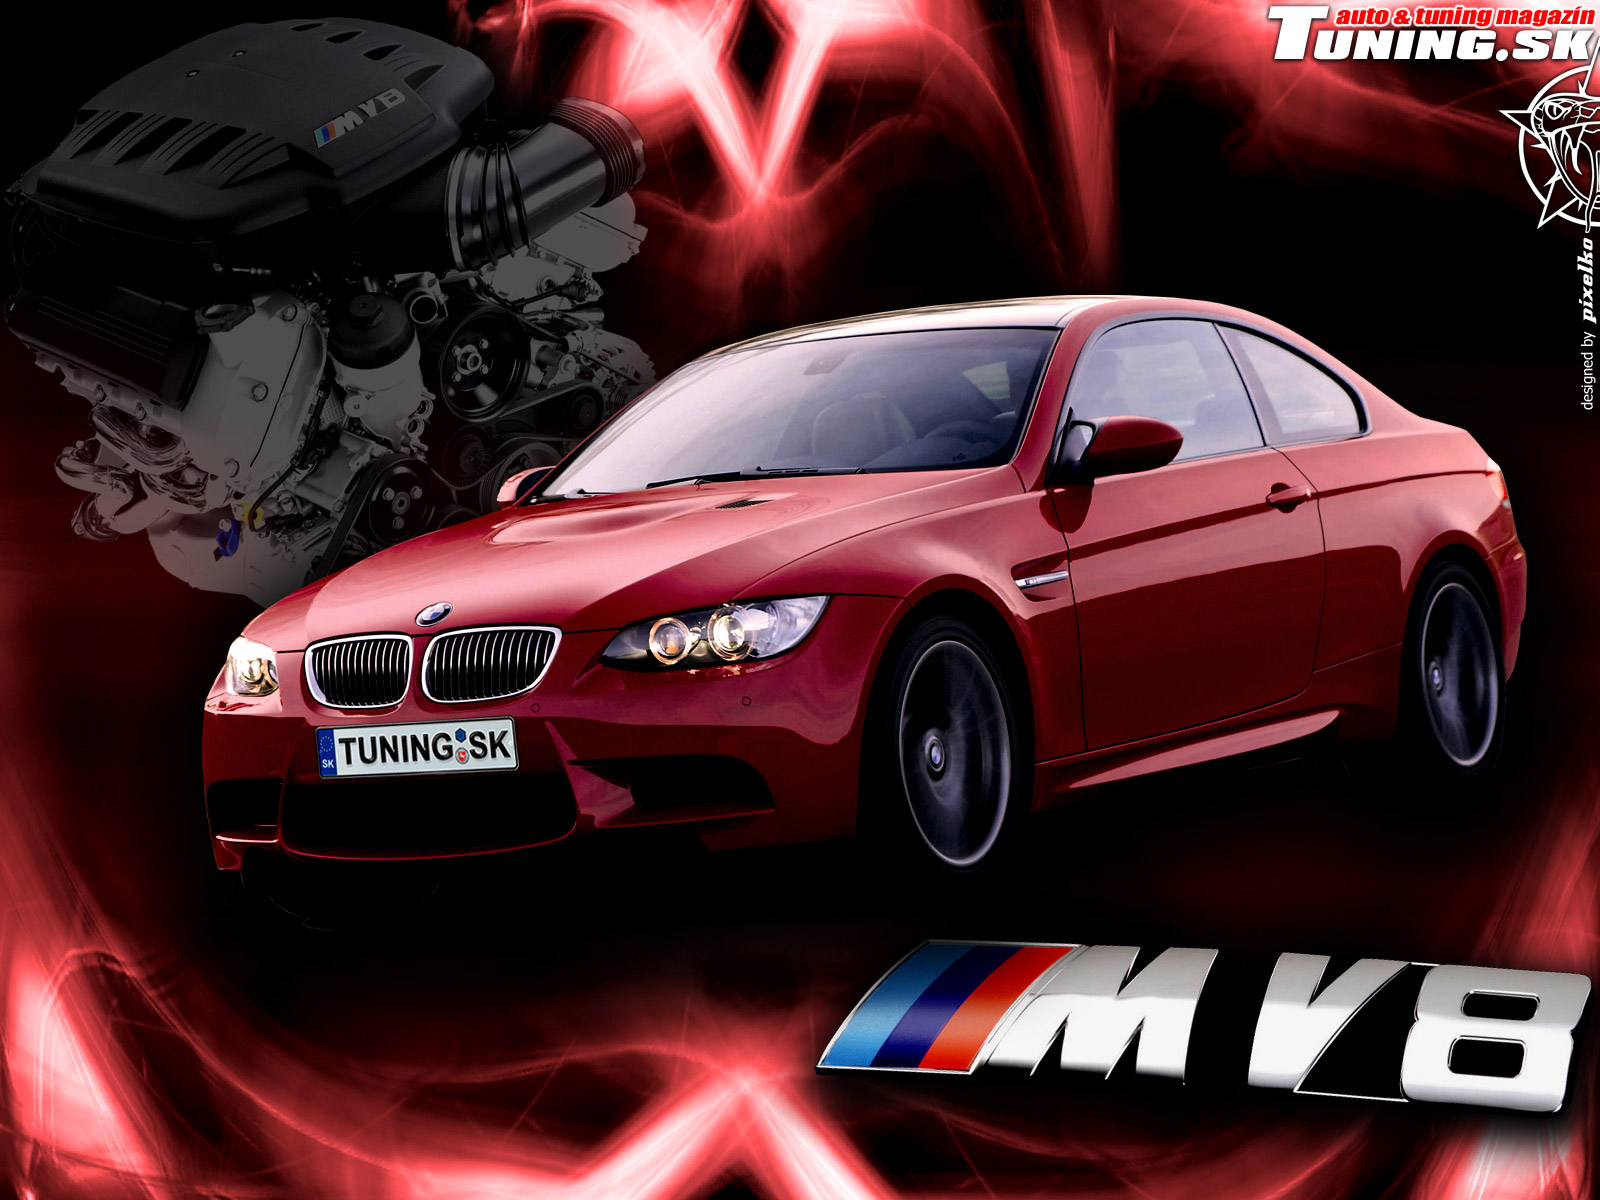 bmw m3 v8 Wallpaper hd bmw m3